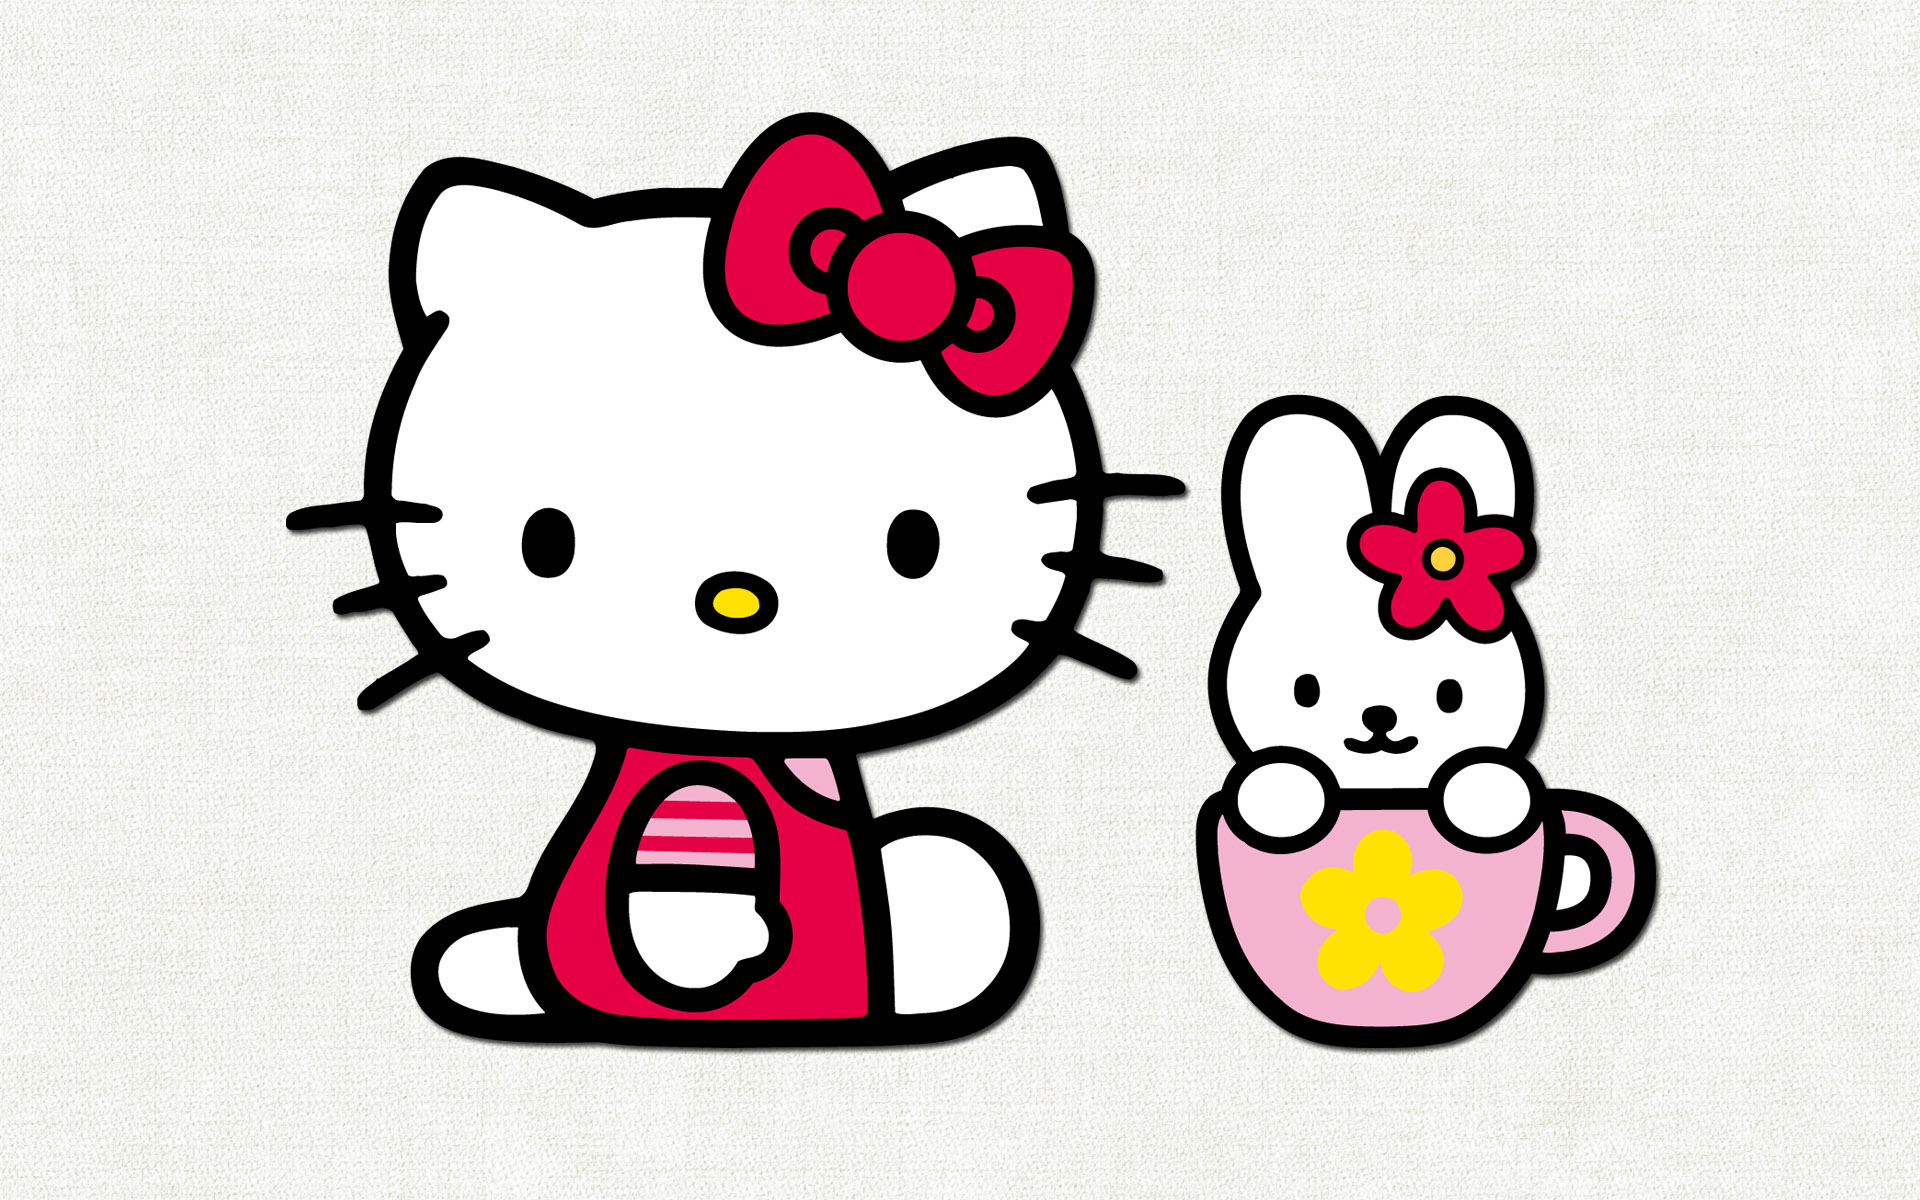 La gatita de Hello Kitty - 1920x1200